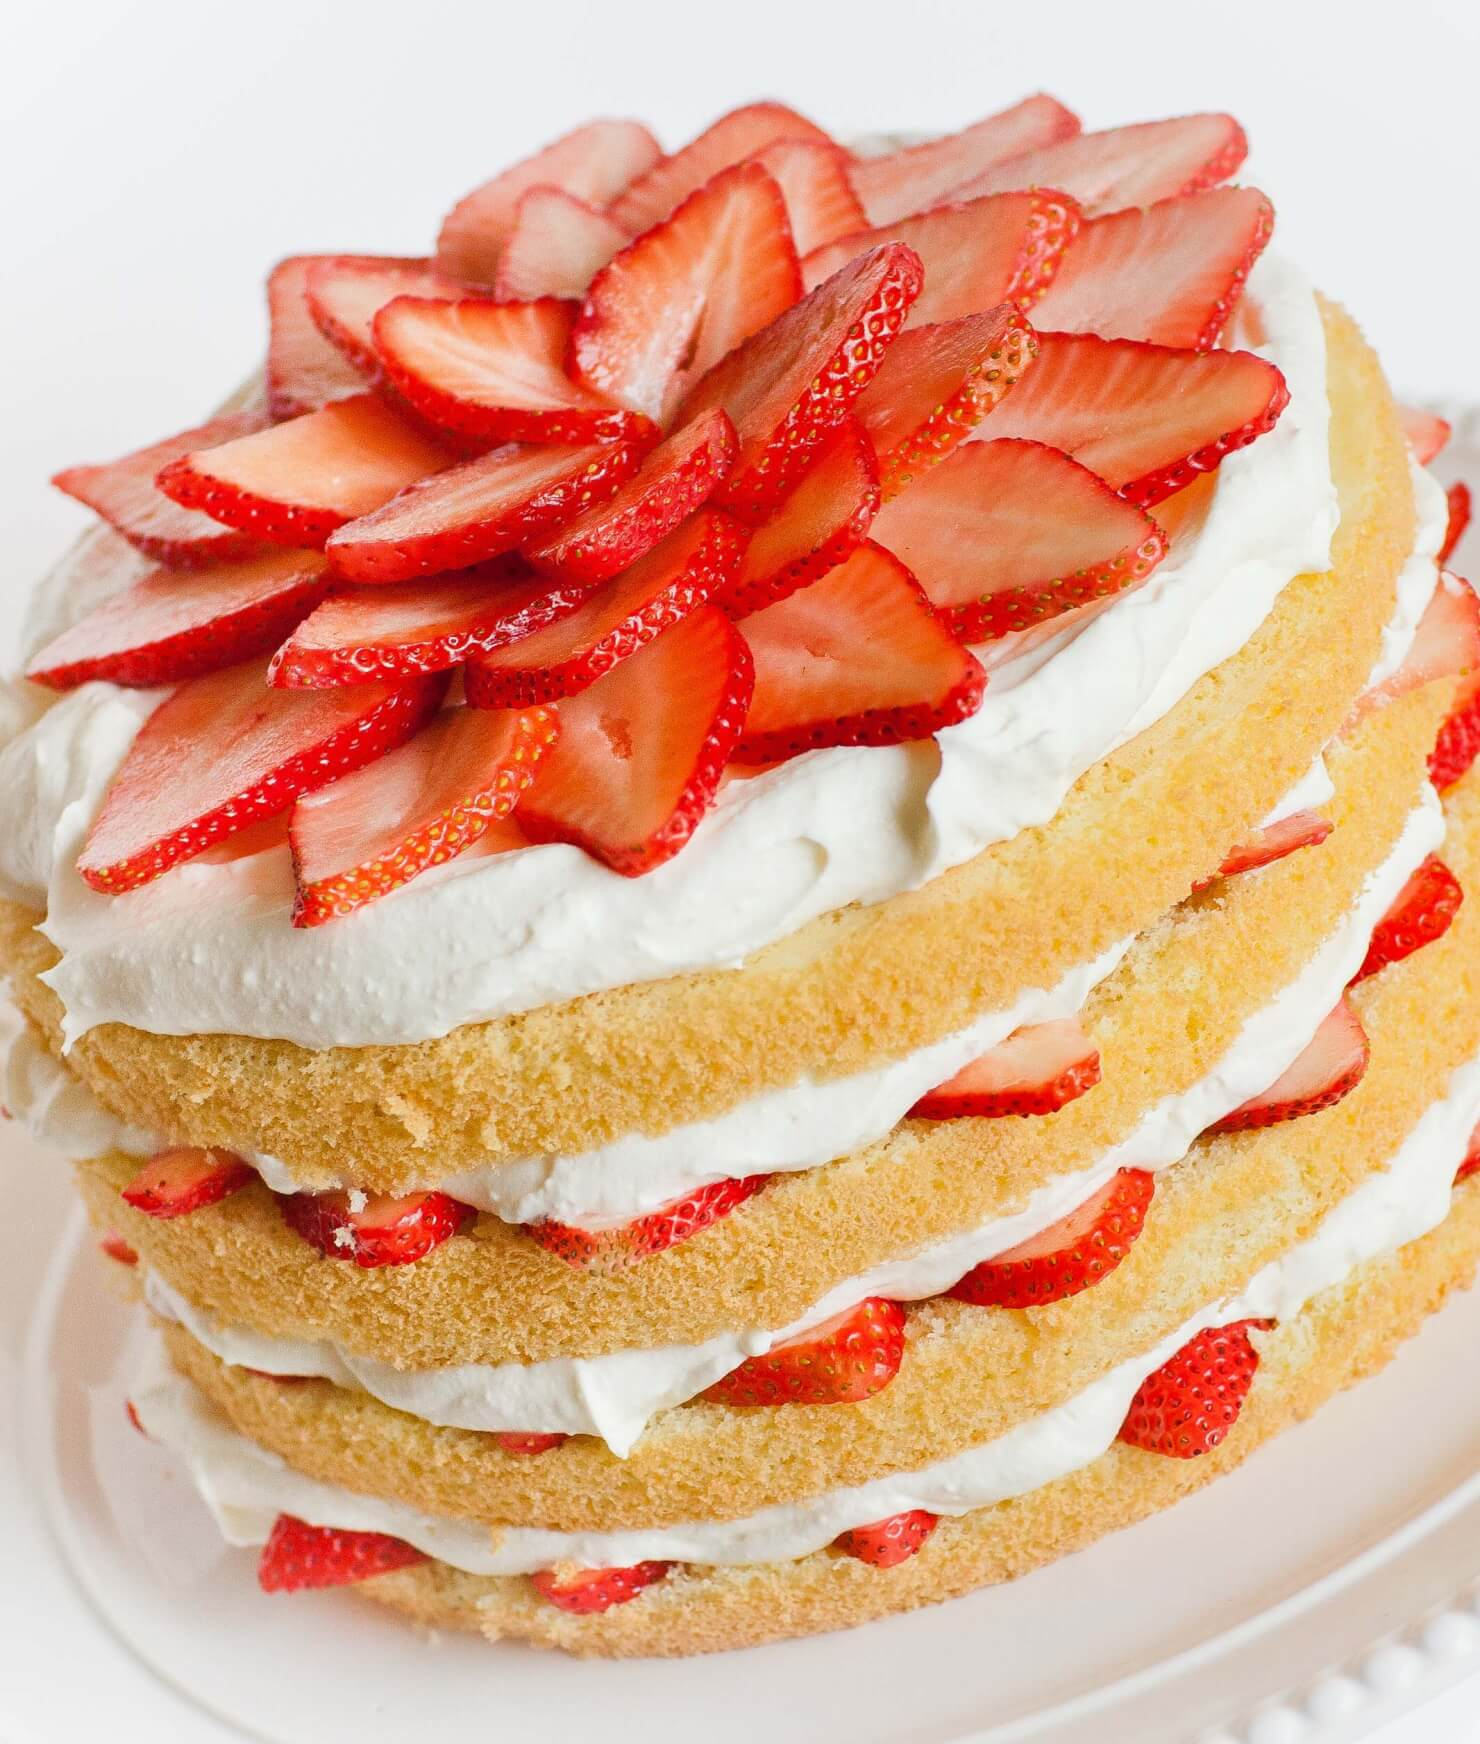 Strawberries And Cream Cake With Cream Cheese Frosting Tatyanas